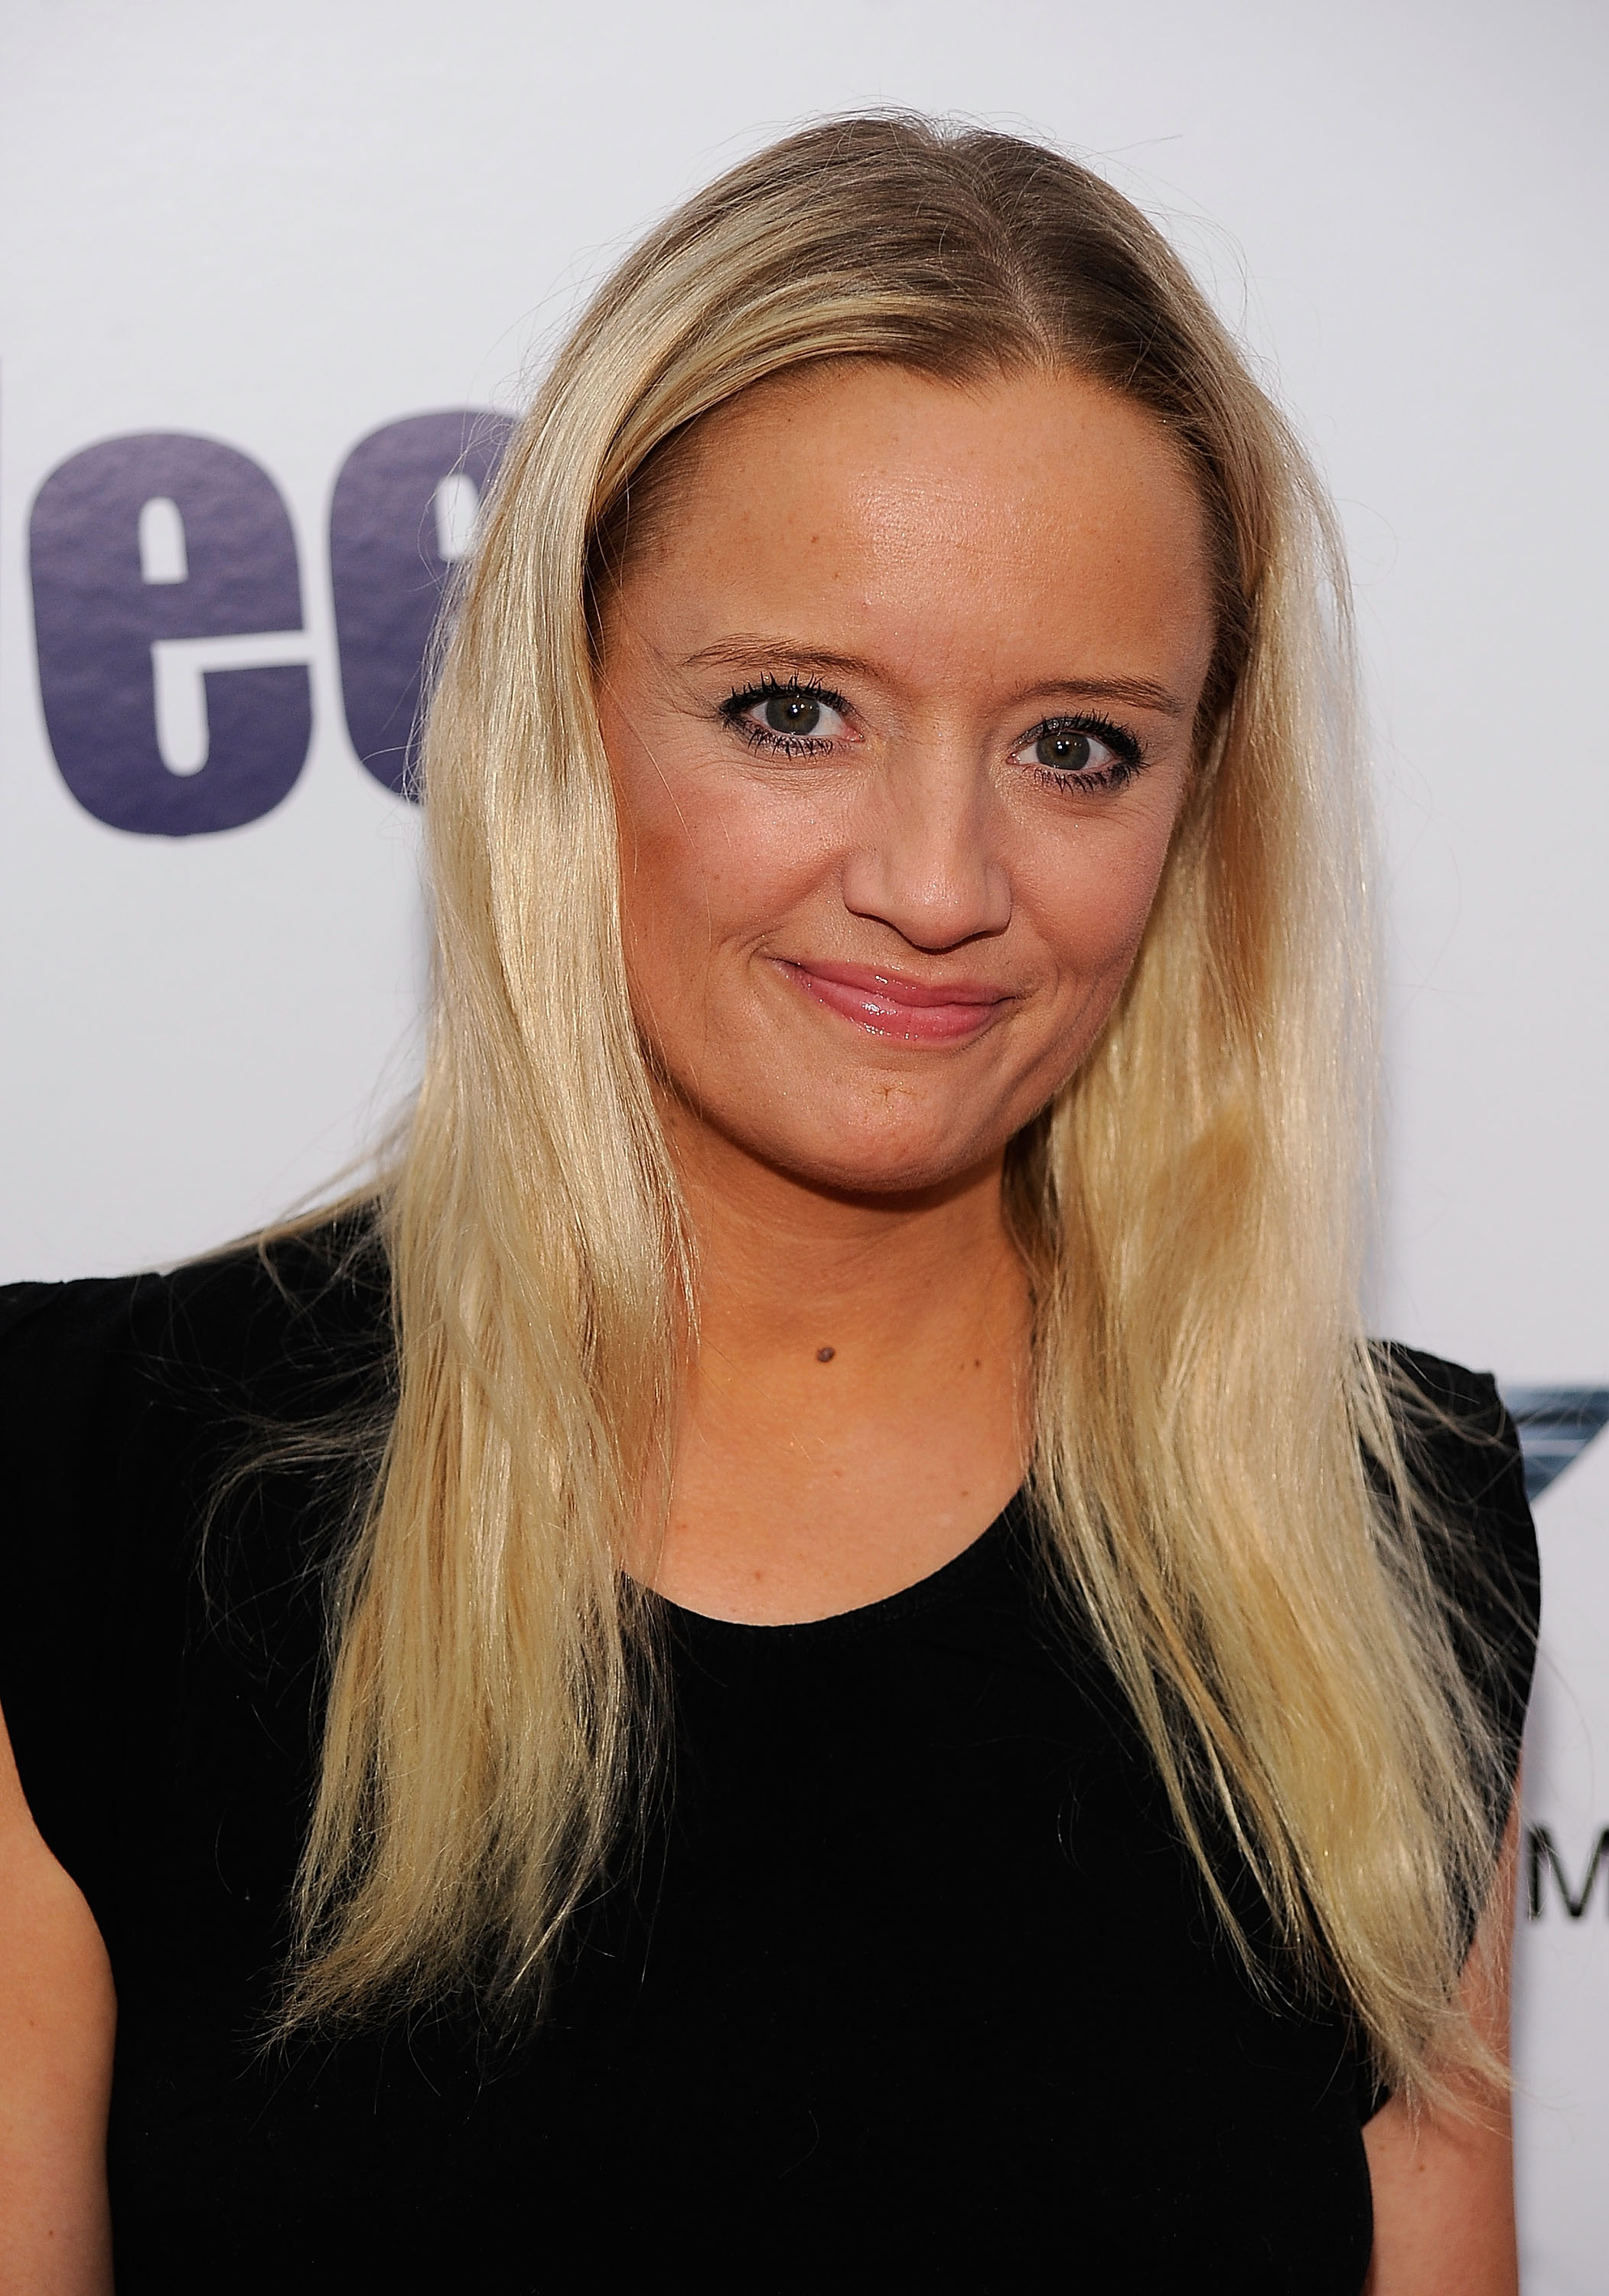 lucy davis weightlucy davis the office, lucy davis films, lucy davis interview, lucy davis, lucy davis actress, lucy davis facebook, lucy davis instagram, lucy davis photography, lucy davis ncis, lucy davis equestrian, lucy davis imdb, lucy davis thrift, lucy davis weight, lucy davis barron, lucy davis hot, lucy davis 2016, lucy davis wonder woman, lucy davis twitter, lucy davis movies and tv shows